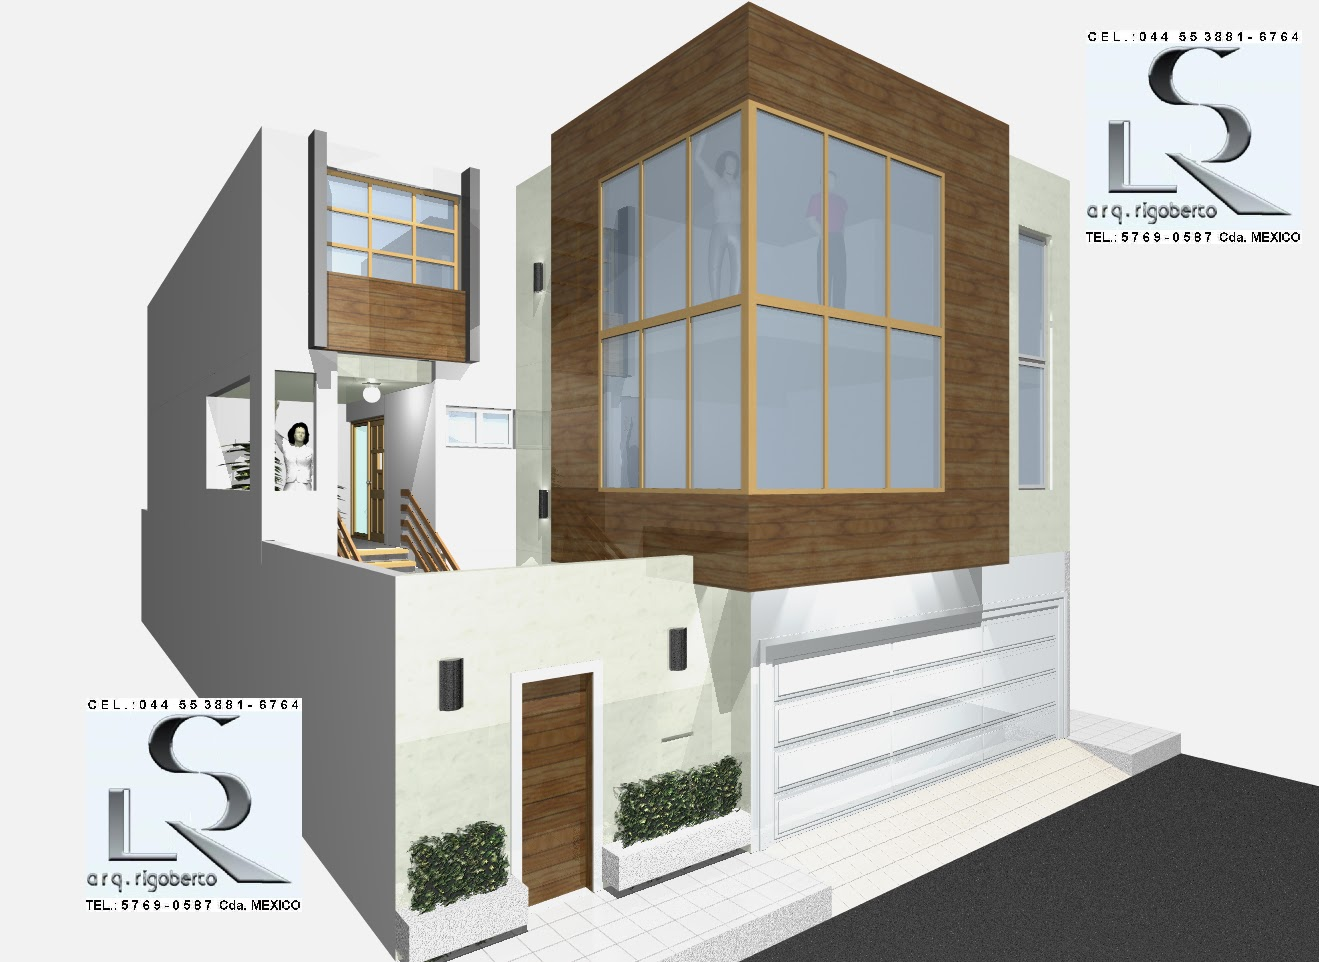 Dise o arquitect nico en 3d proyectos arquitect nicos en for Disenos arquitectonicos casas